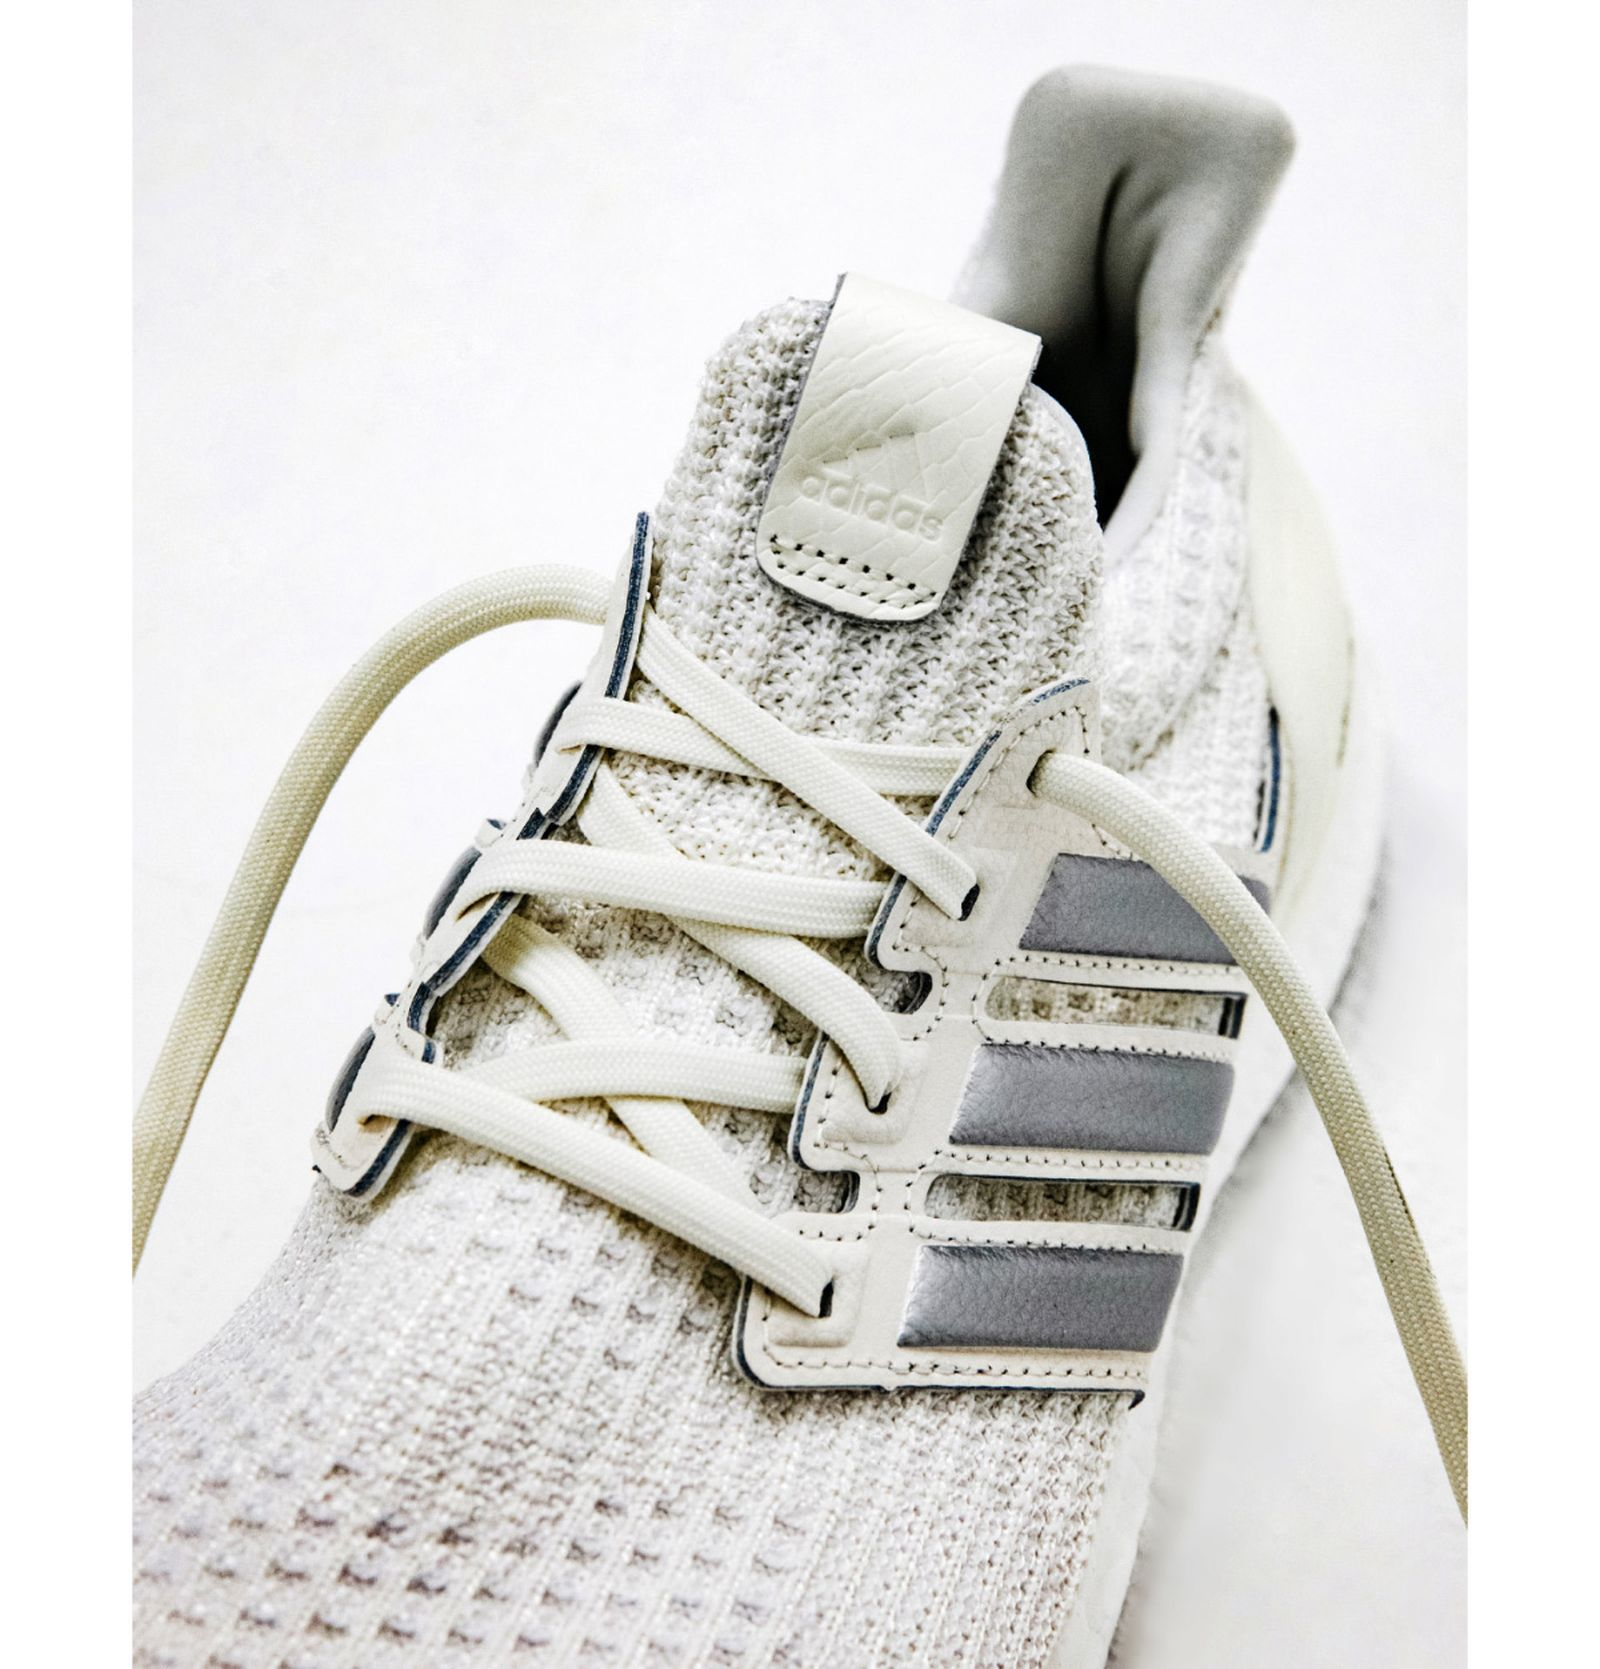 adidas game thrones interview game of thrones